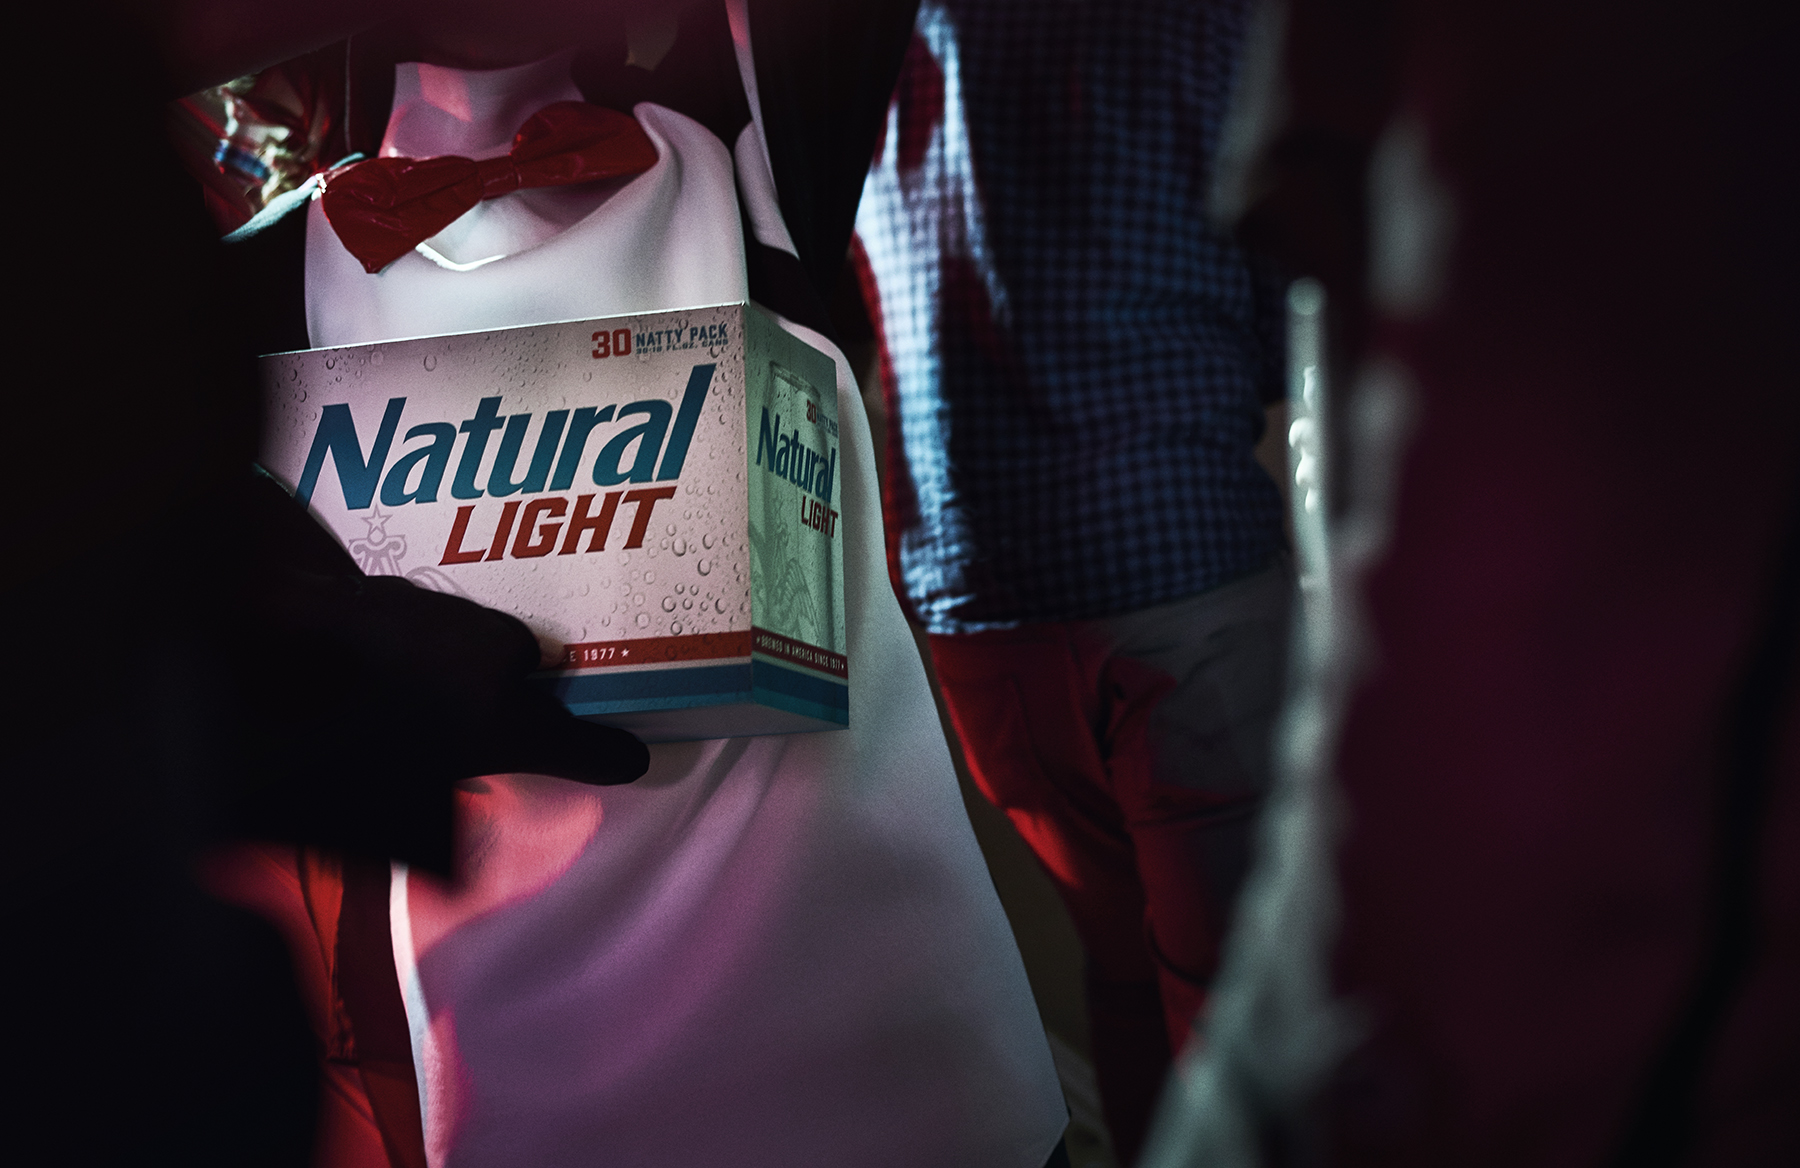 Natural Light Advertising Campaing 2016/17